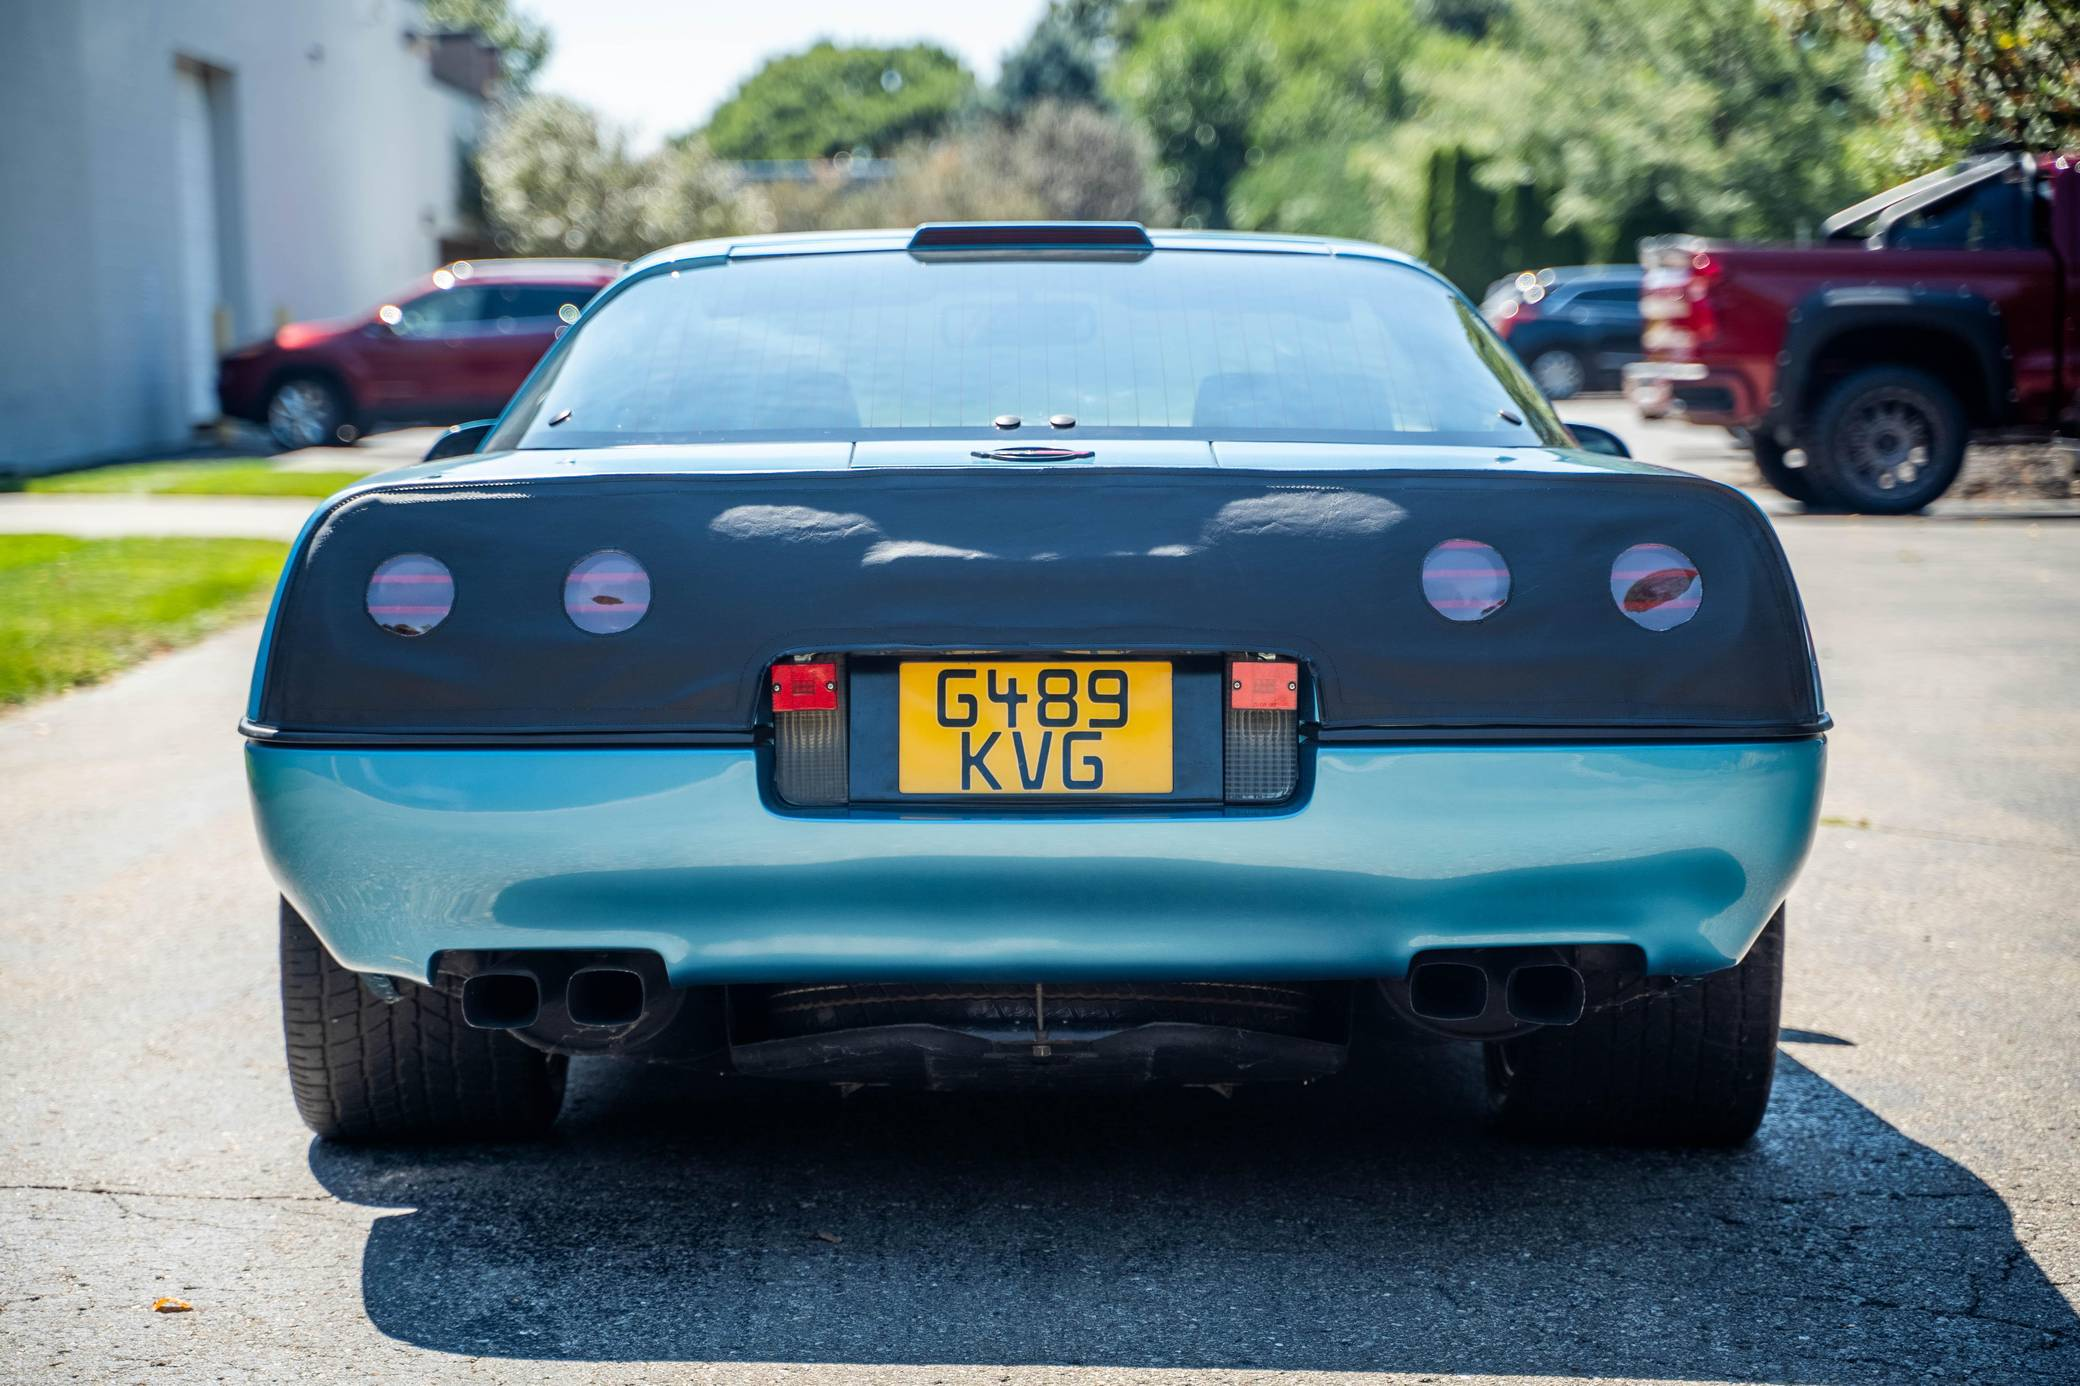 Chevy Vette King of the Hill Prototype rear